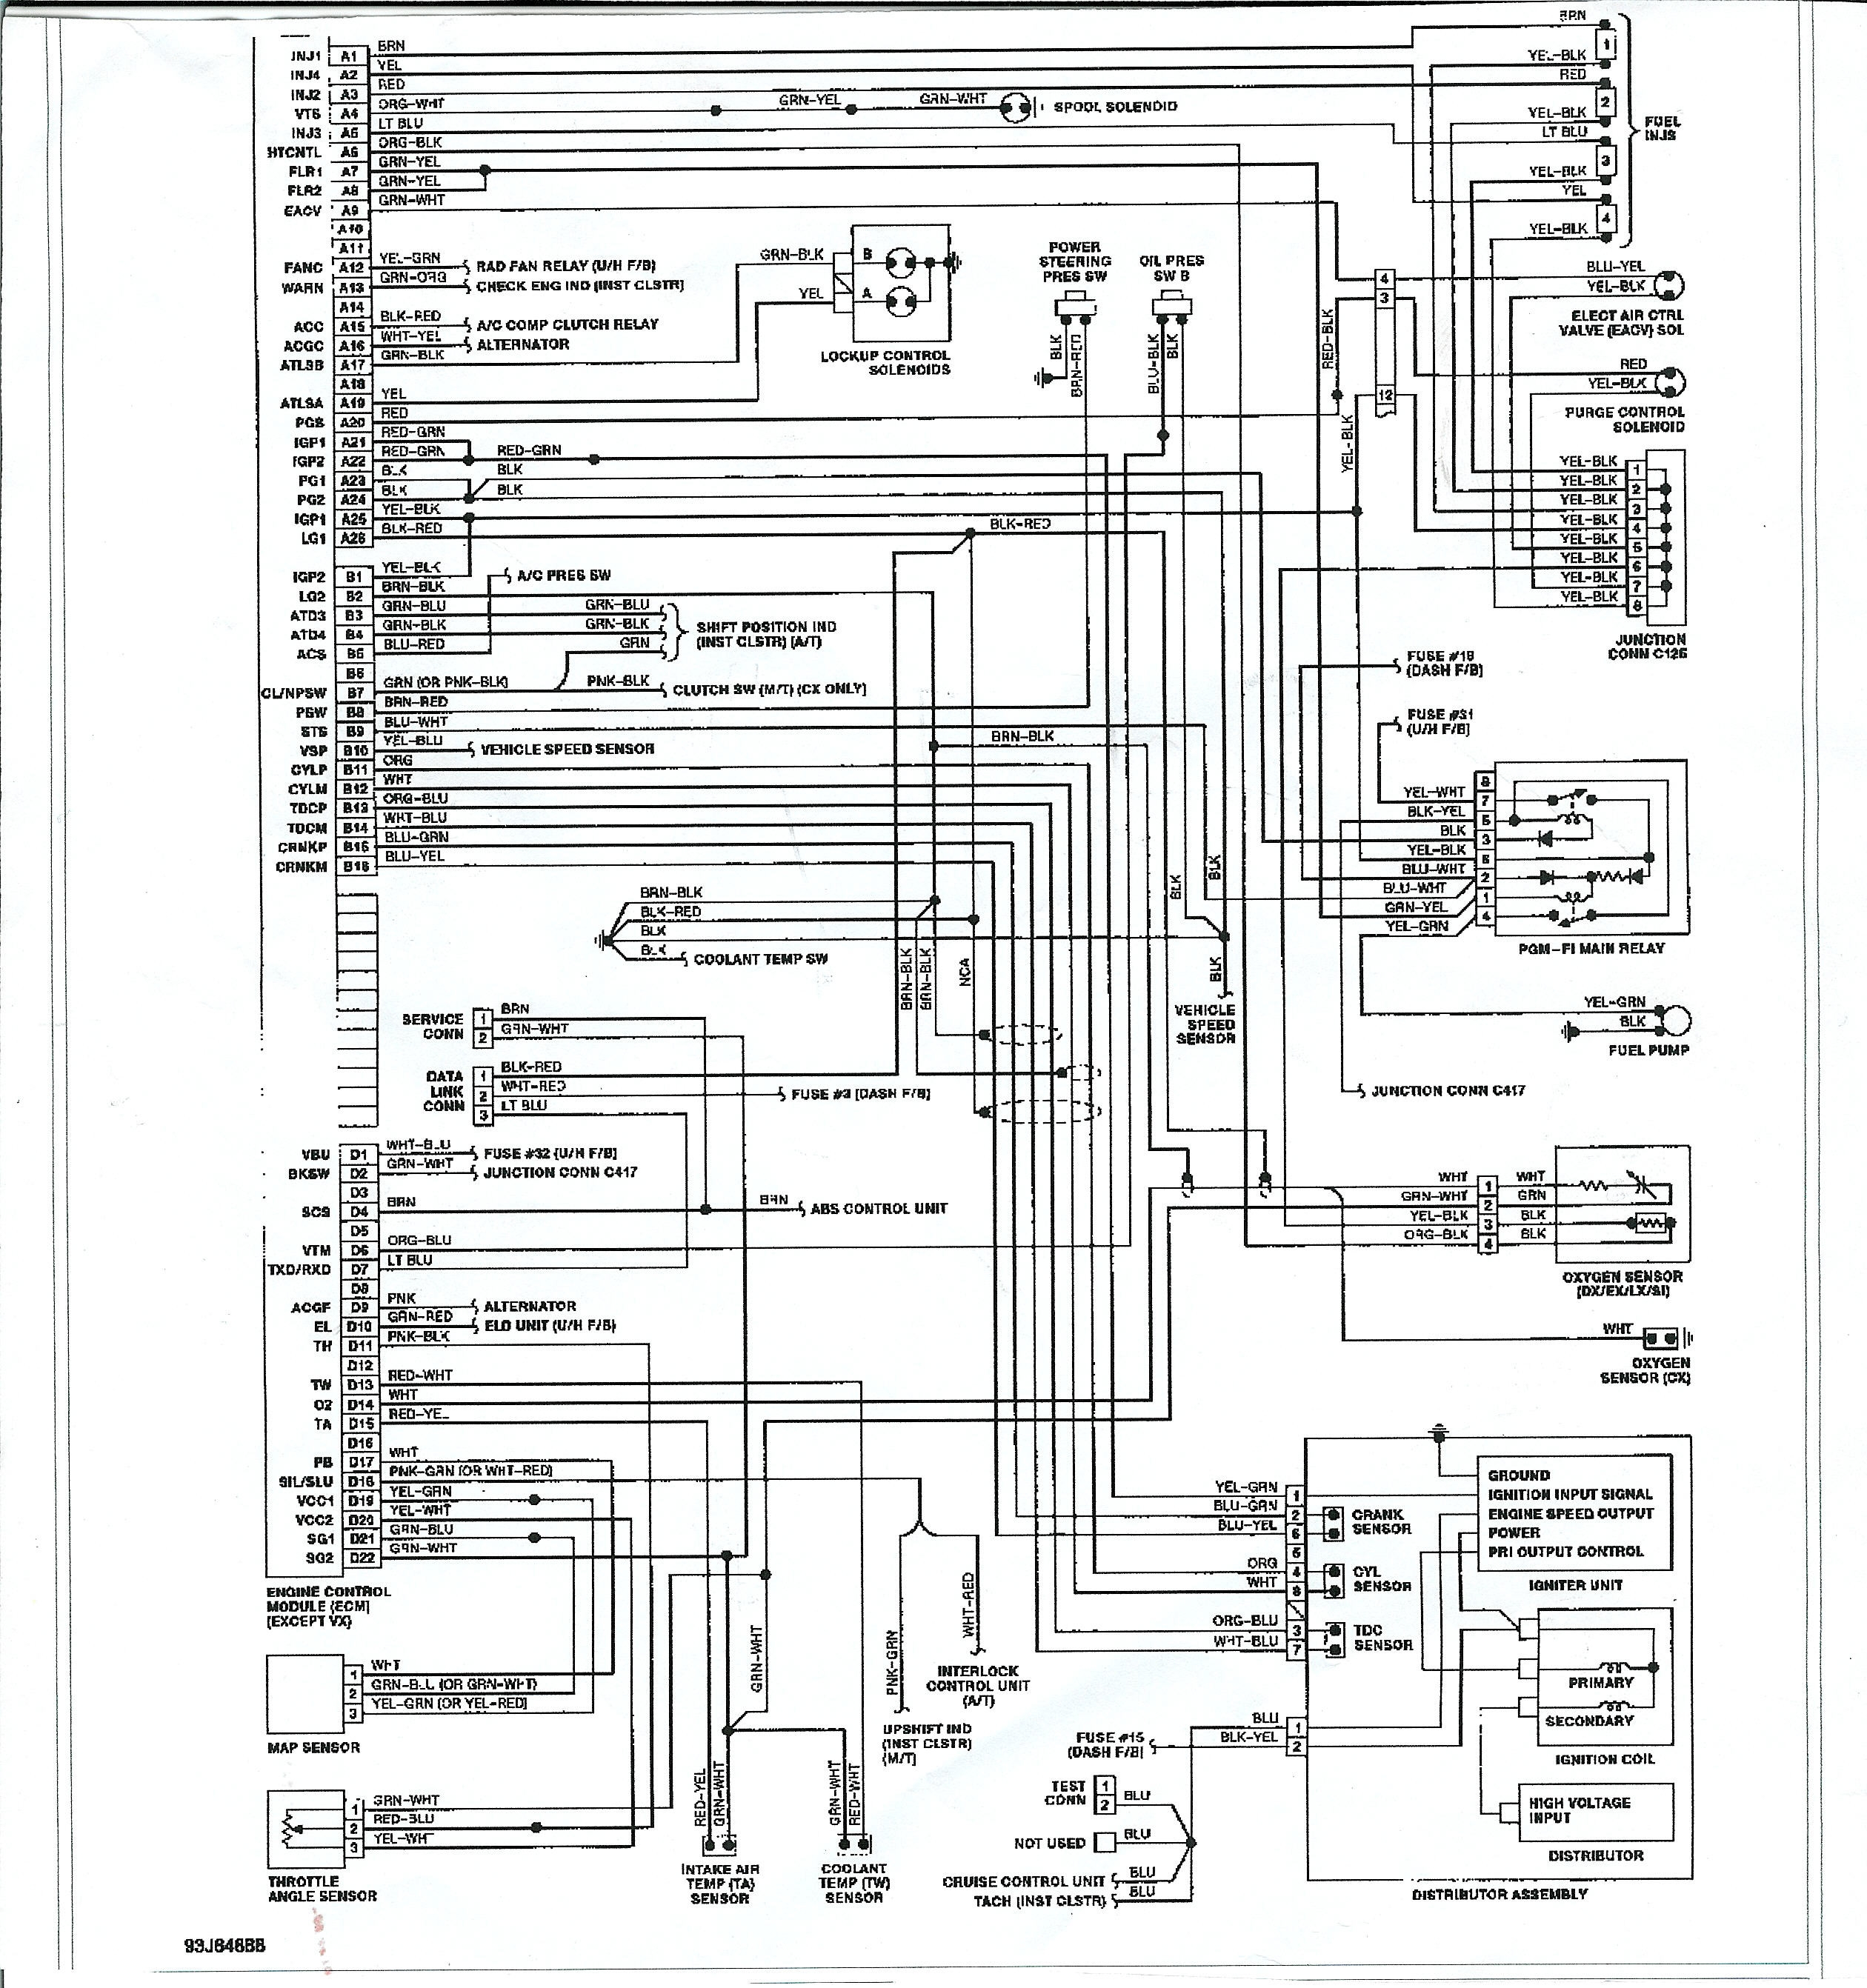 1991 honda civic electrical wiring diagram and schematics Download-fancy 99 civic wiring diagrams frieze electrical circuit diagram rh suaiphone org 19-g